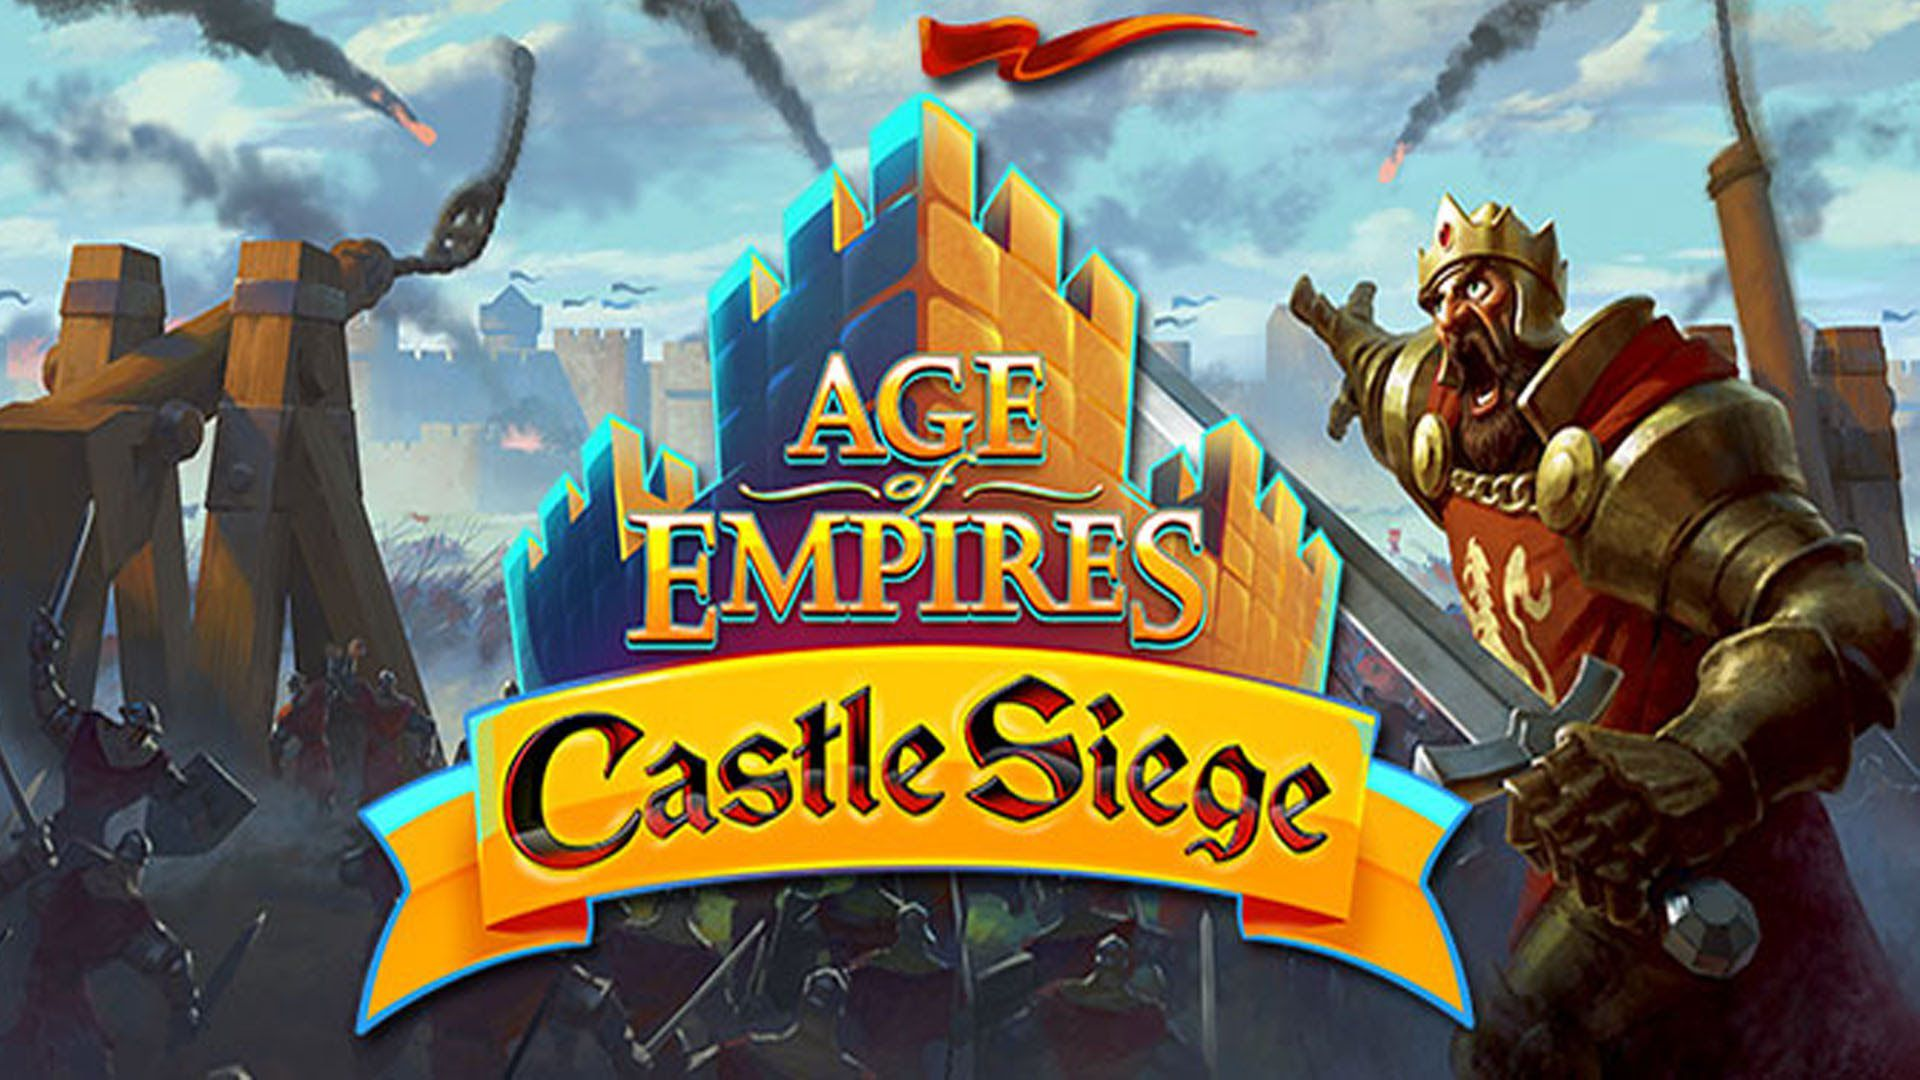 Hd Live Wallpaper For Tablet Age Of Empires Castle Siege Disponibile Su Android